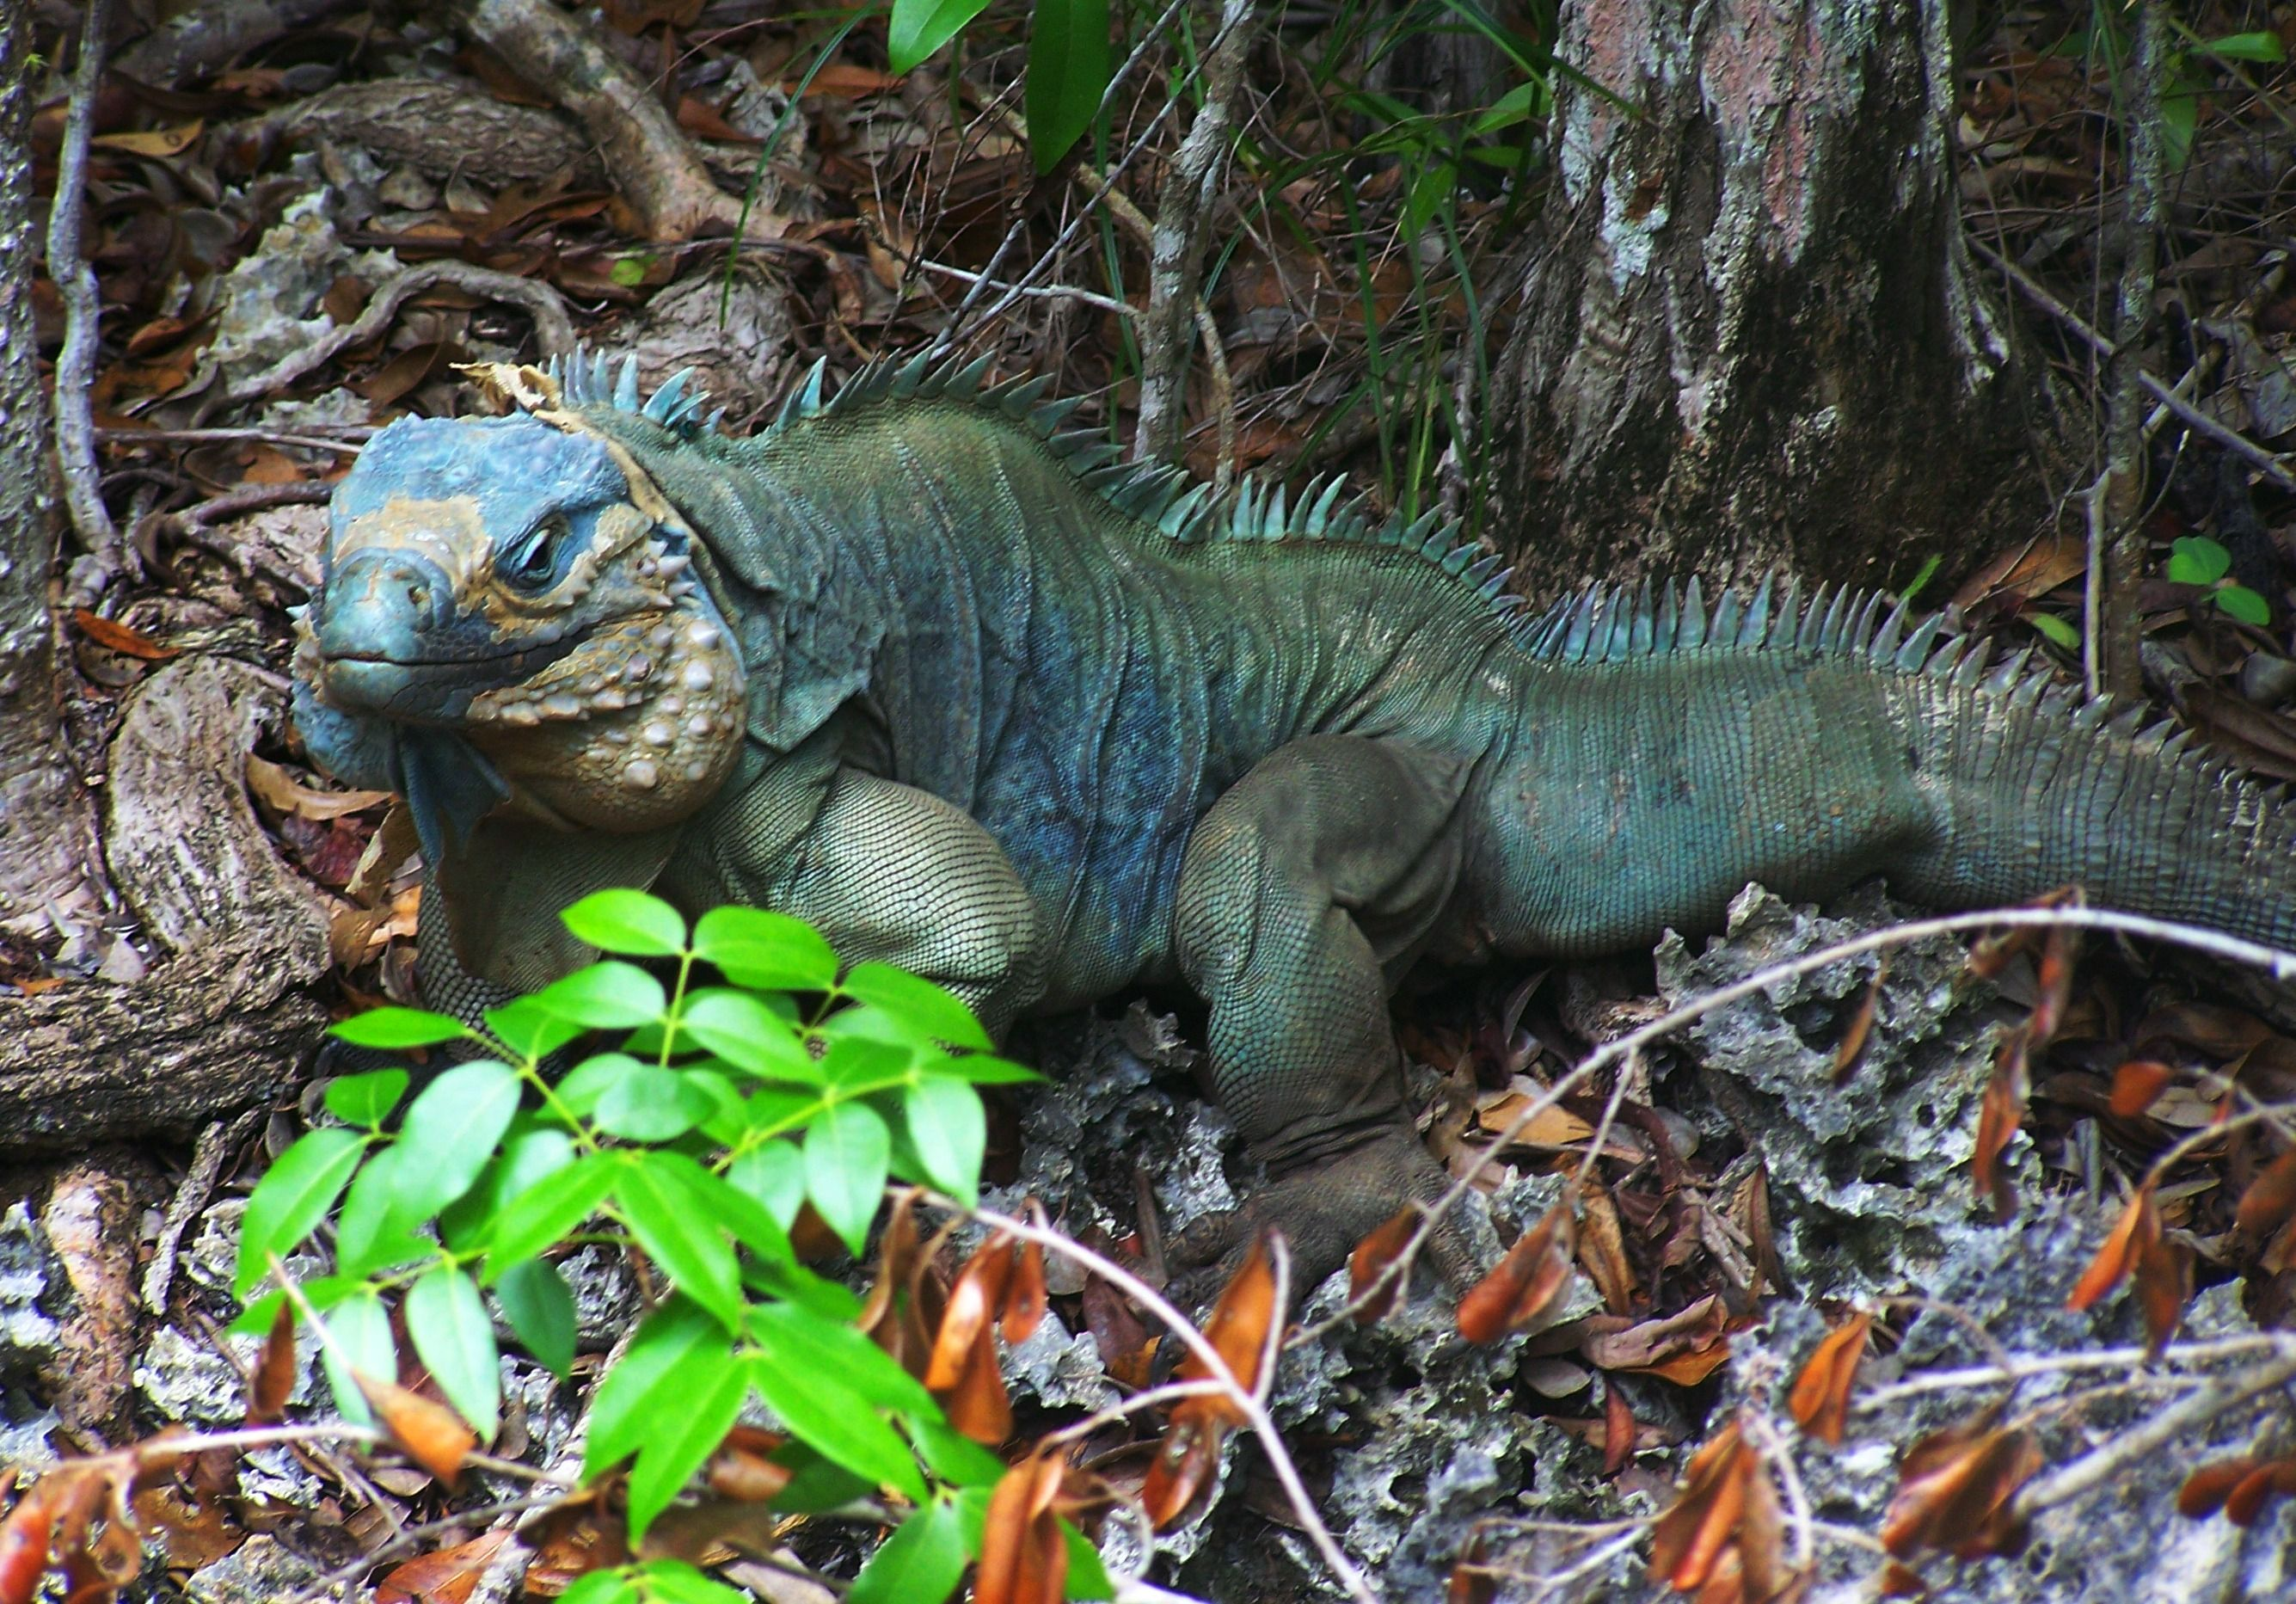 The Blue Iguana Or Grand Cayman Cyclura Lewisi Is An Endangered Species Of